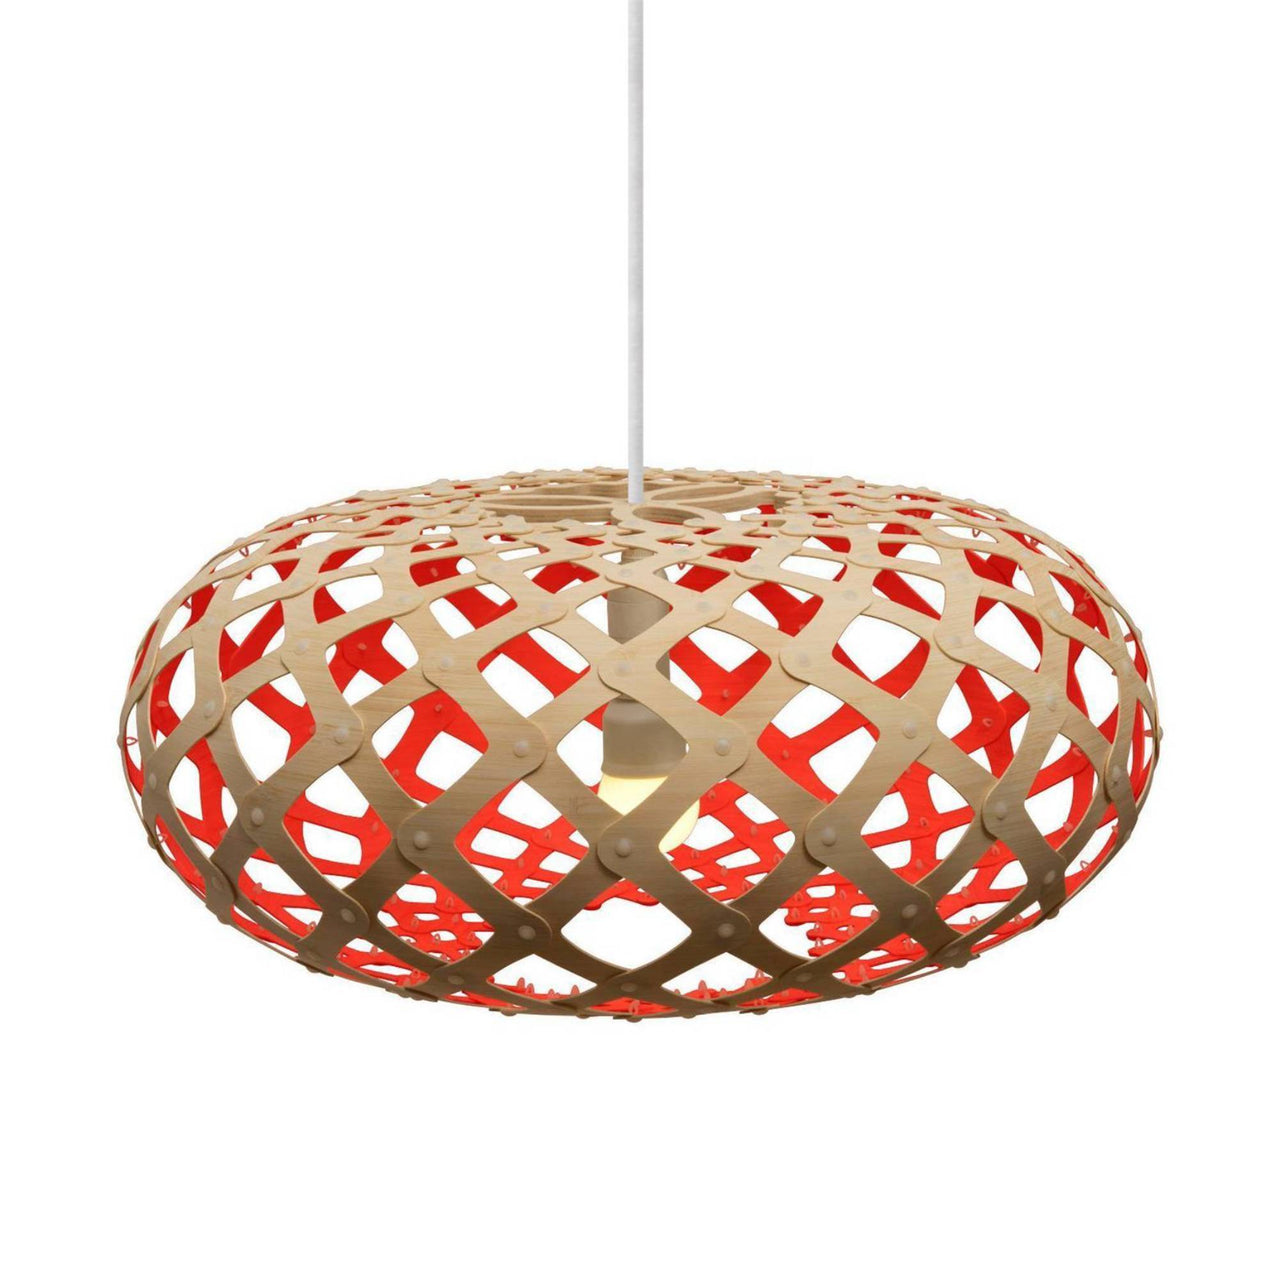 Kina Pendant Light: 800 + Red